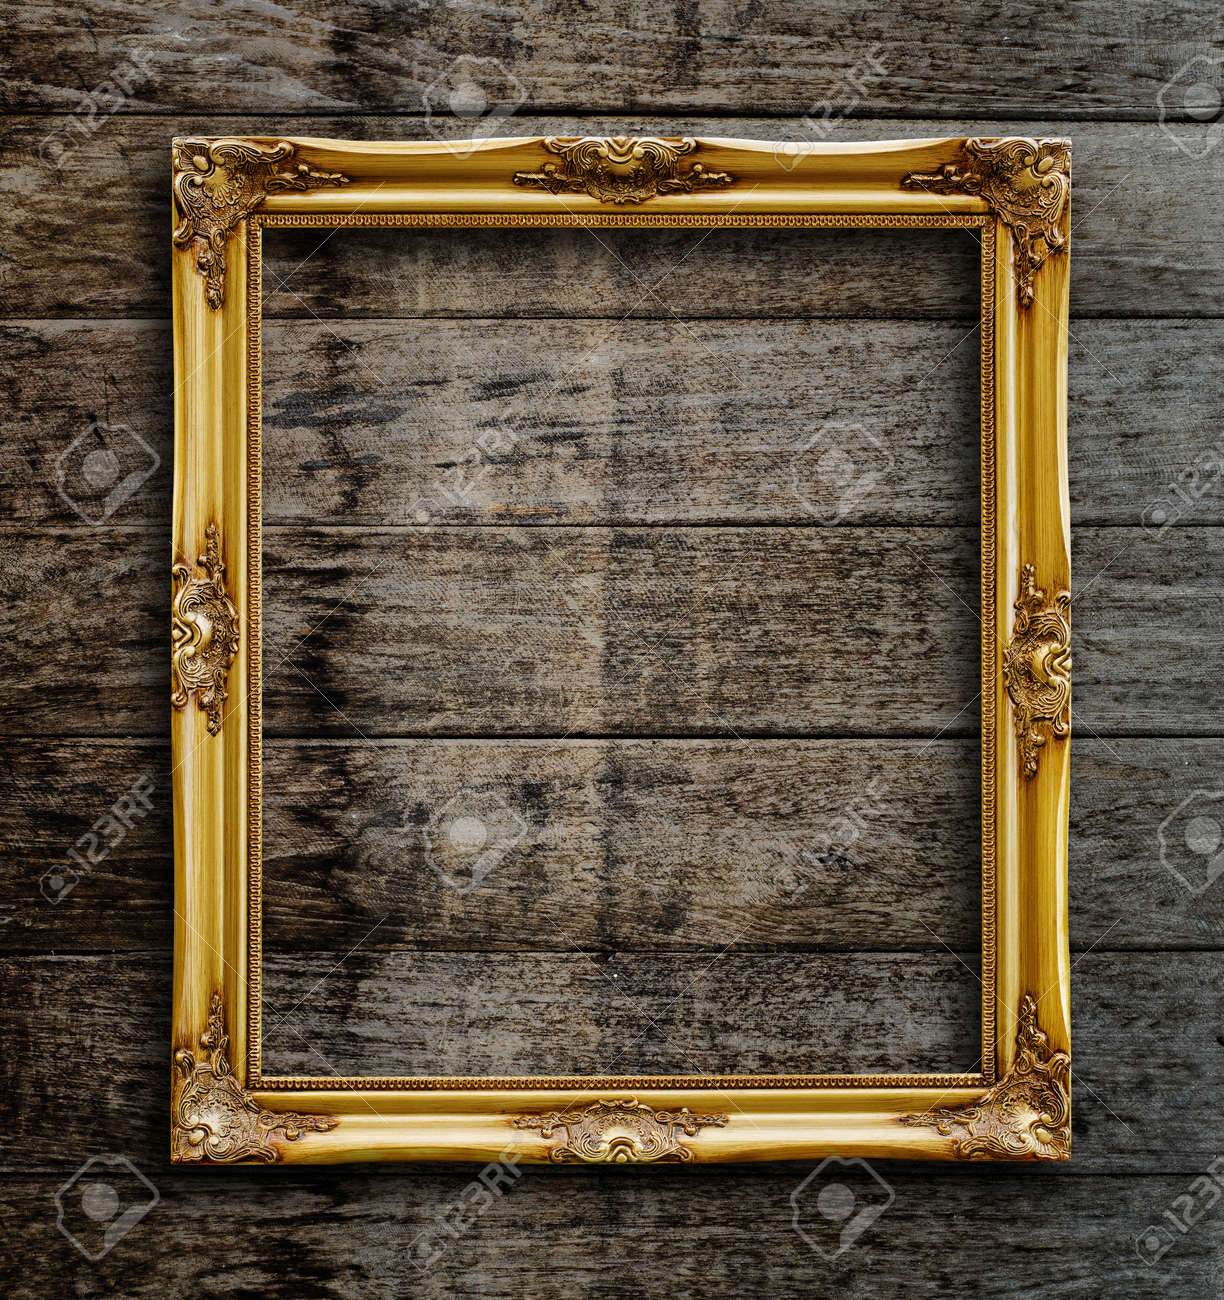 Old Picture Frame On Vintage Wood Wall Stock Photo, Picture And ...